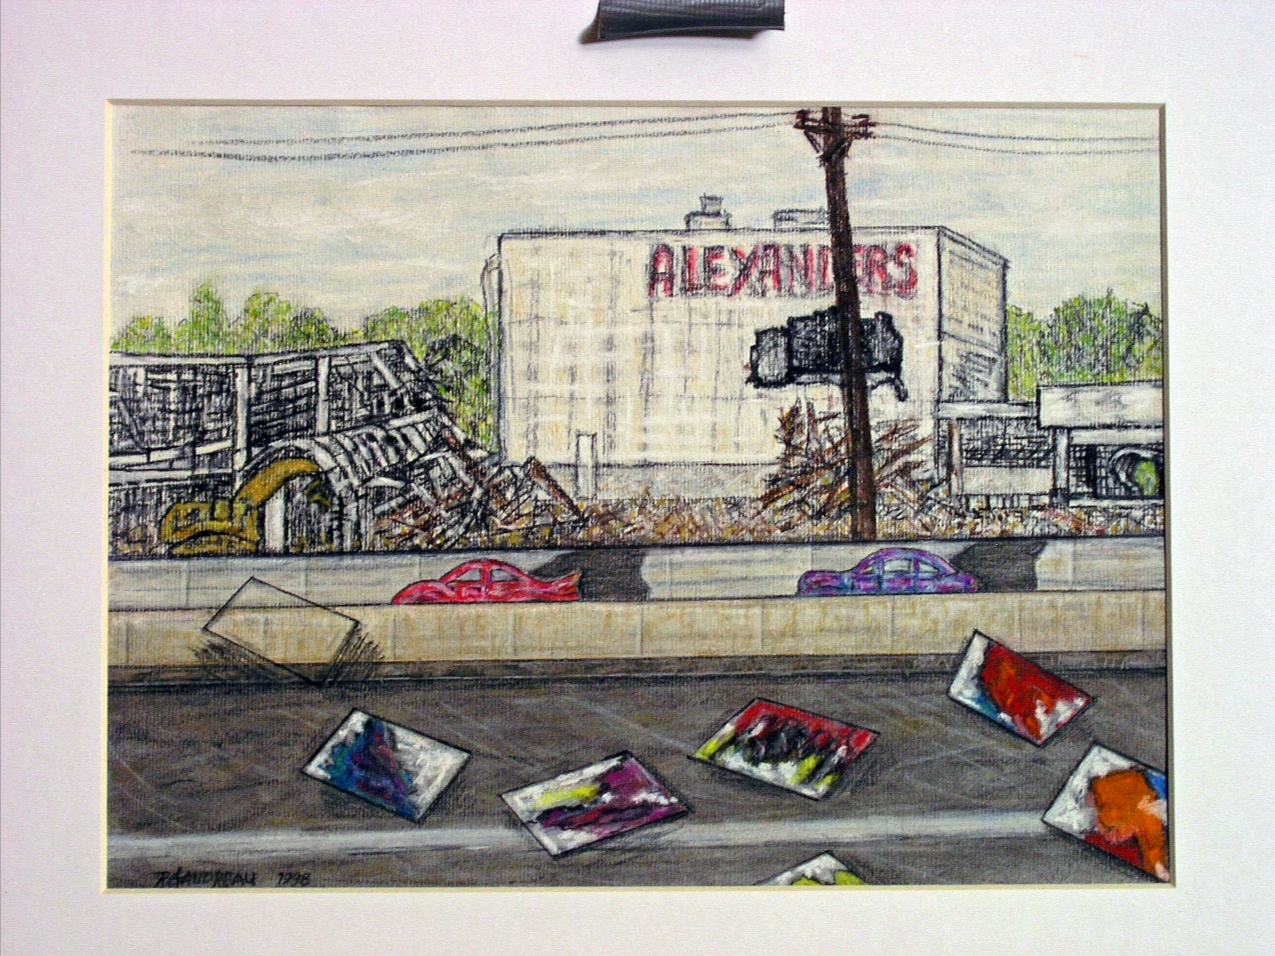 Demolition of Alexanders and the Disappearing Memory of Stefan Knapps Mural Somewhere within the Maze of the Freeway    1999 (Alexanders Department Store, Paramus, New Jersey circa 1999) charcoal, graphite and pastel on paper 9 x 12 inches                           (SOLD)